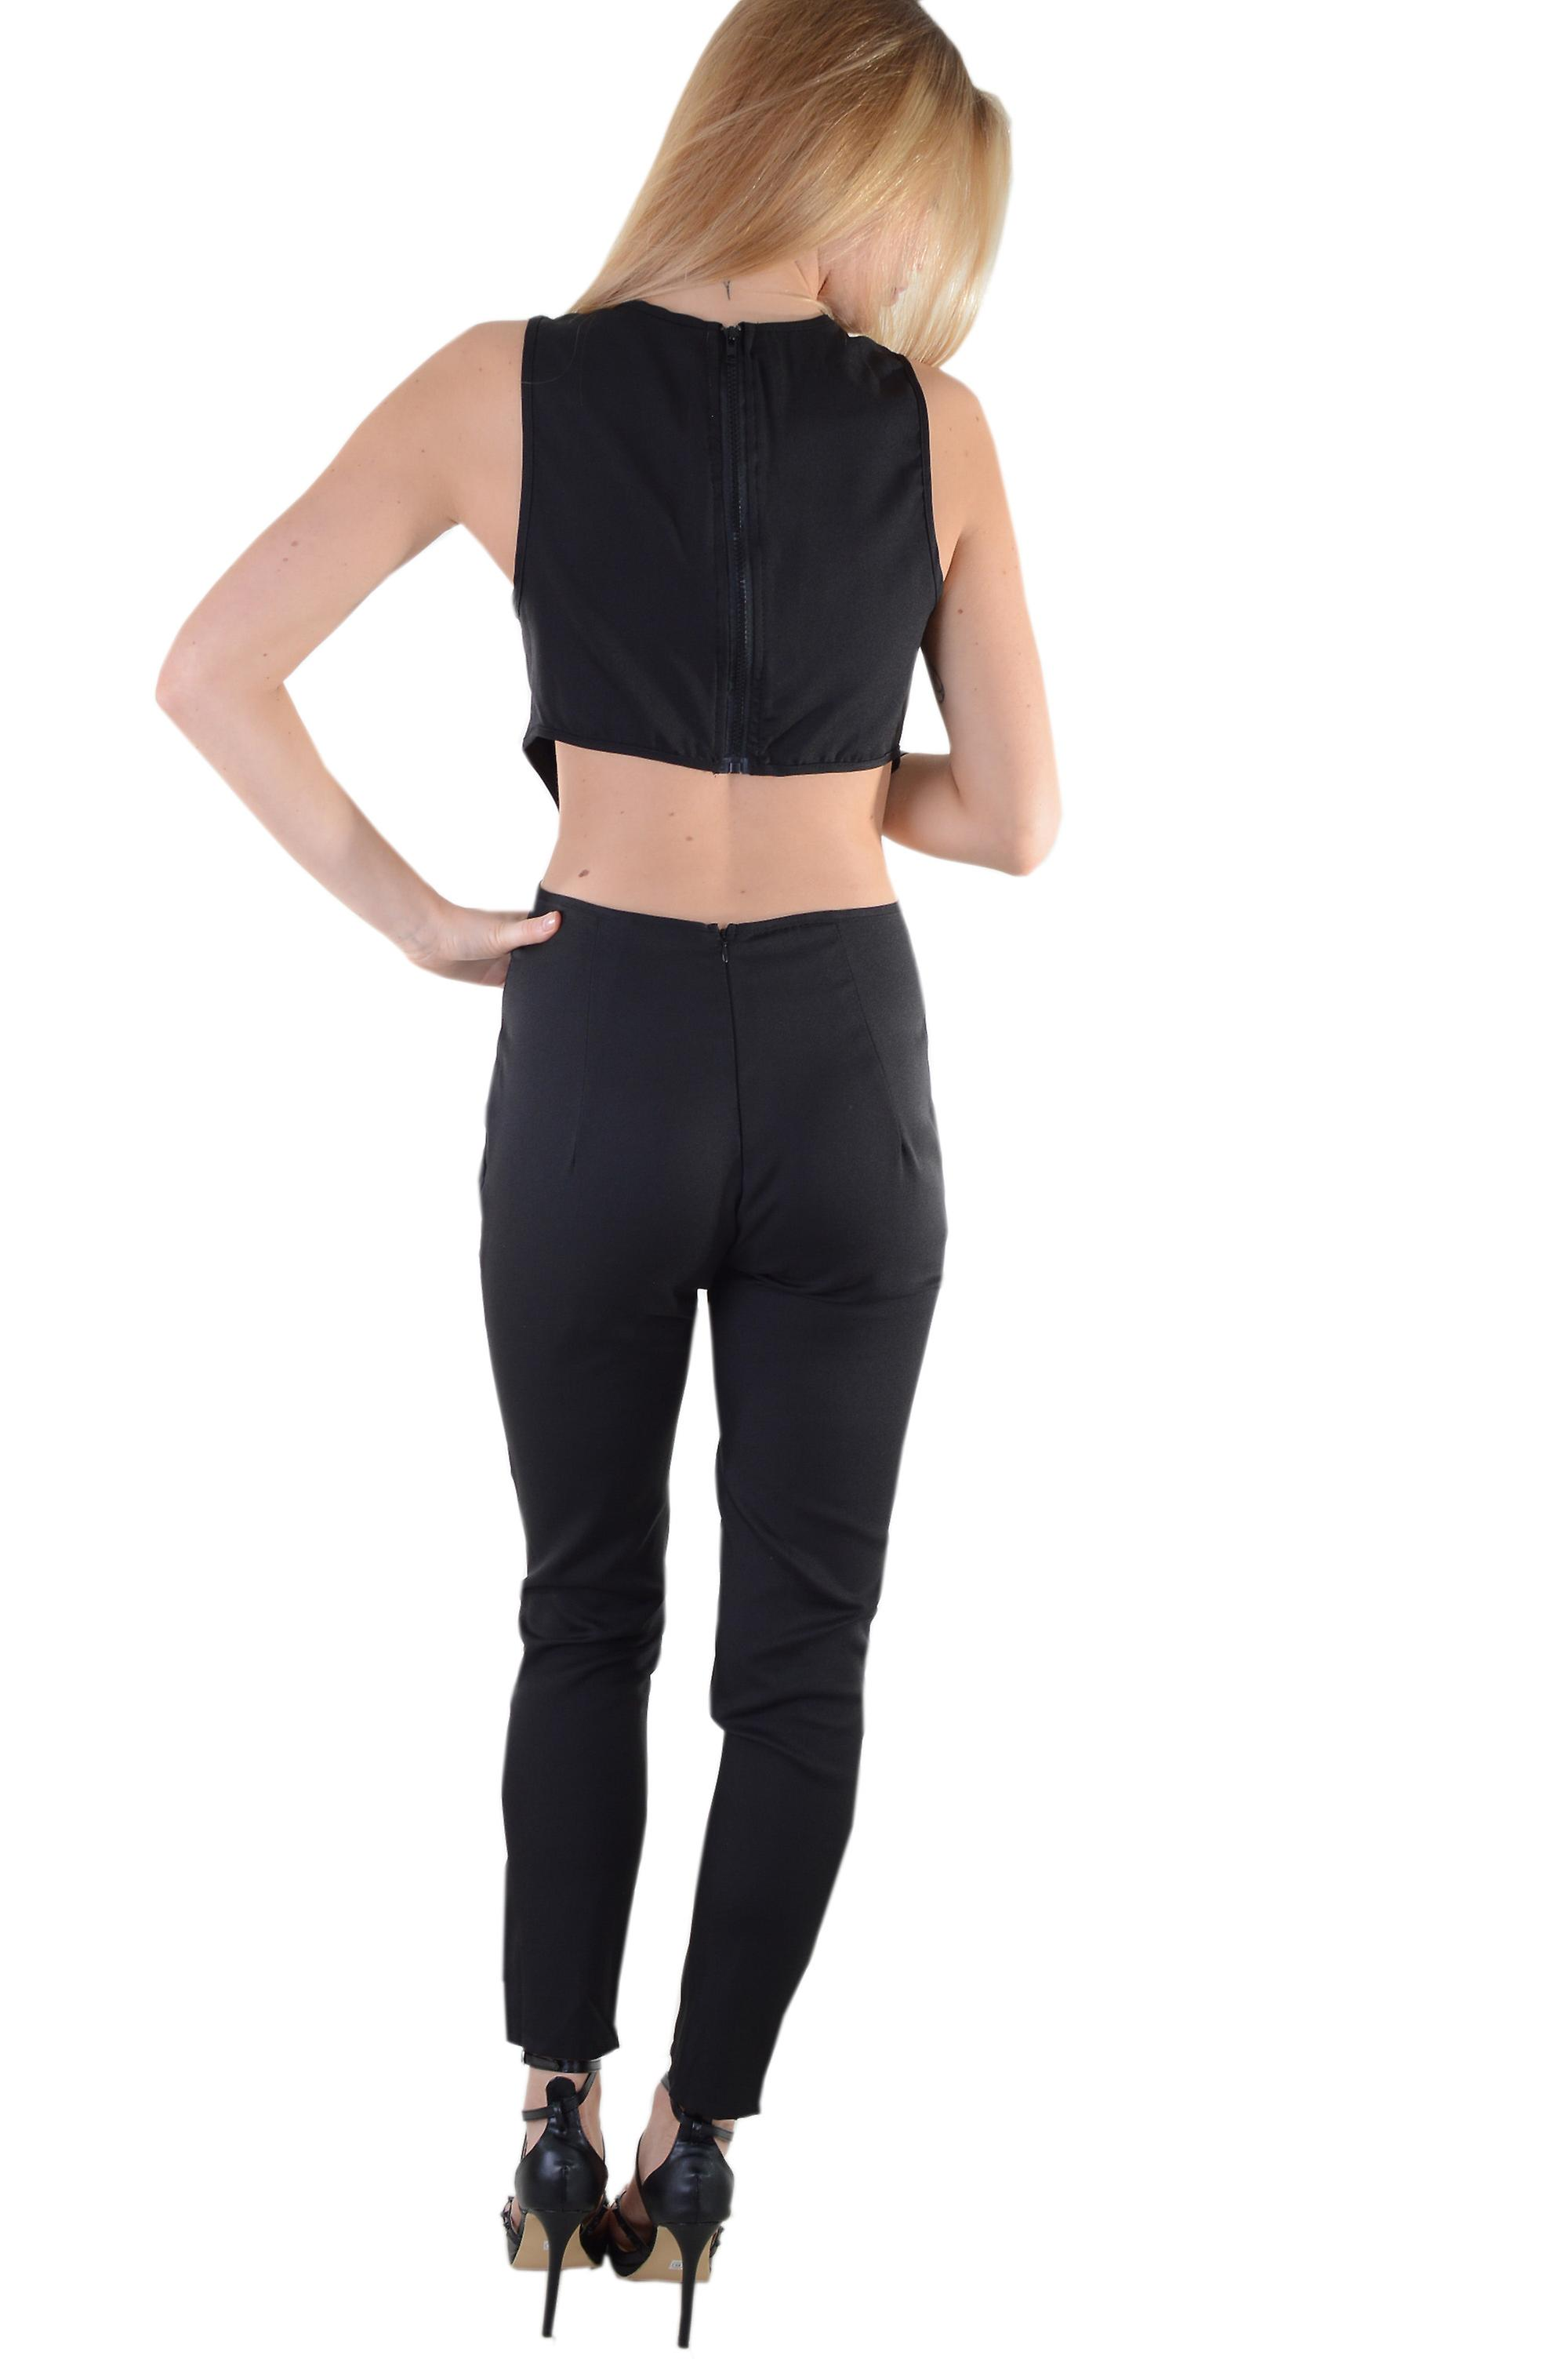 LMS Black Jumpsuit Featuring Cut Out Sides And Peak-A-Boo Chest